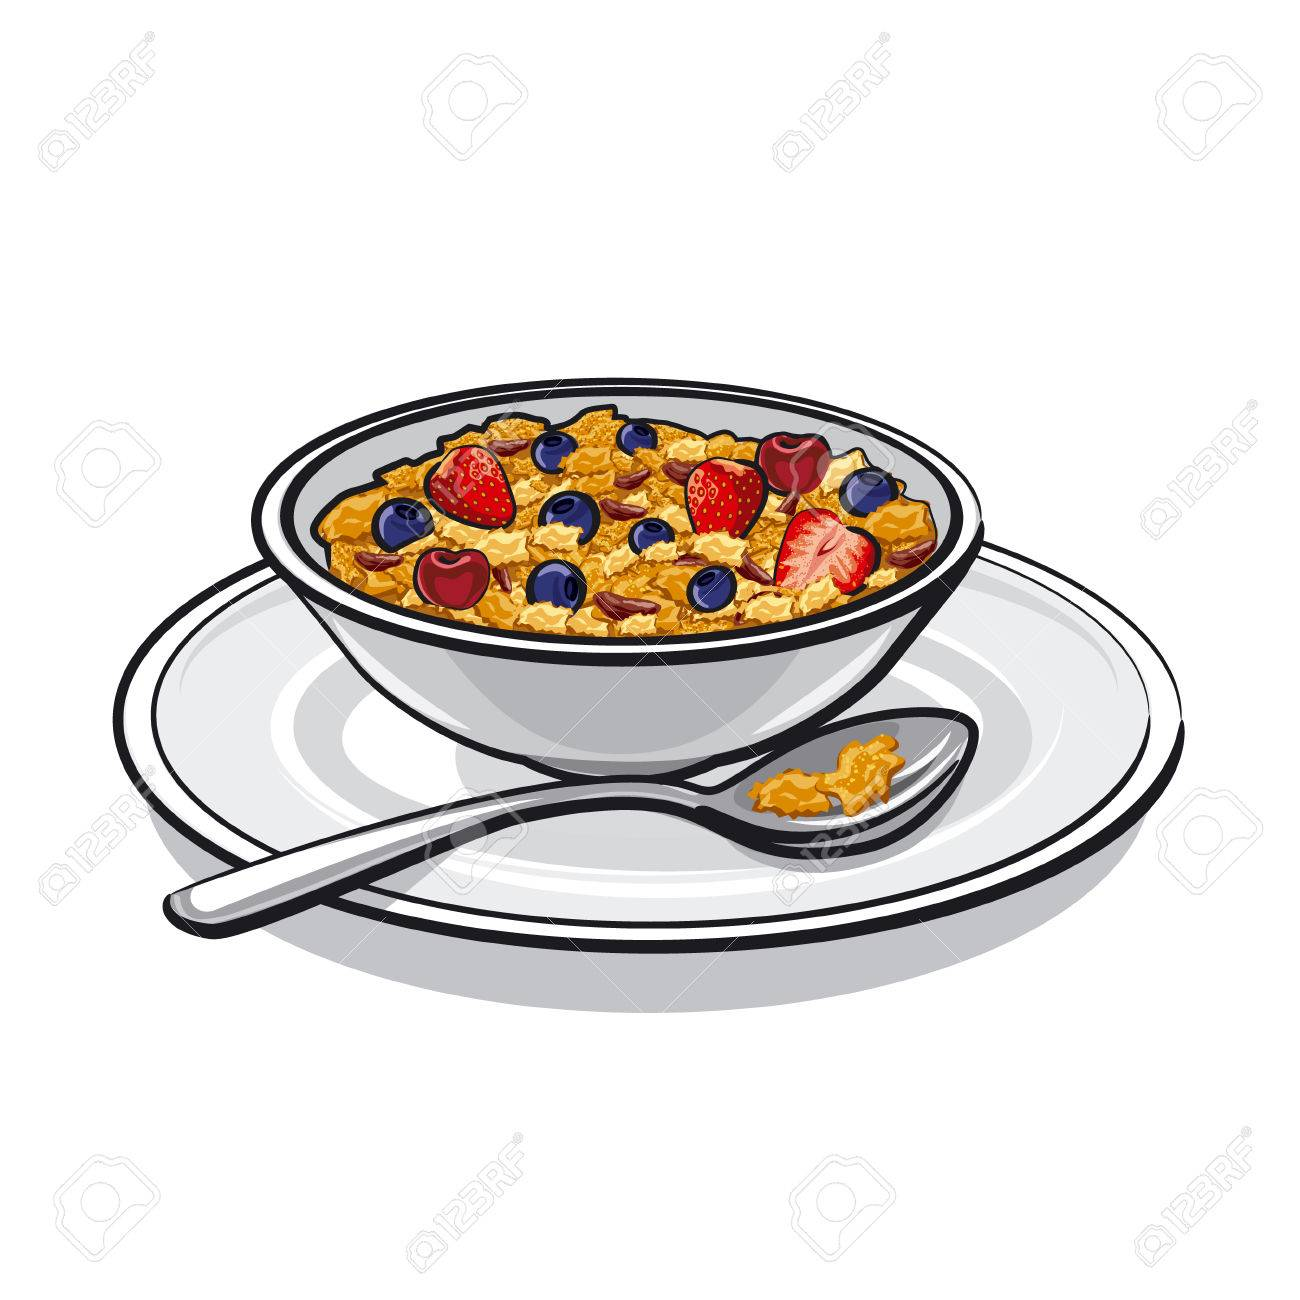 hight resolution of muesli on breakfast stock vector 25929074